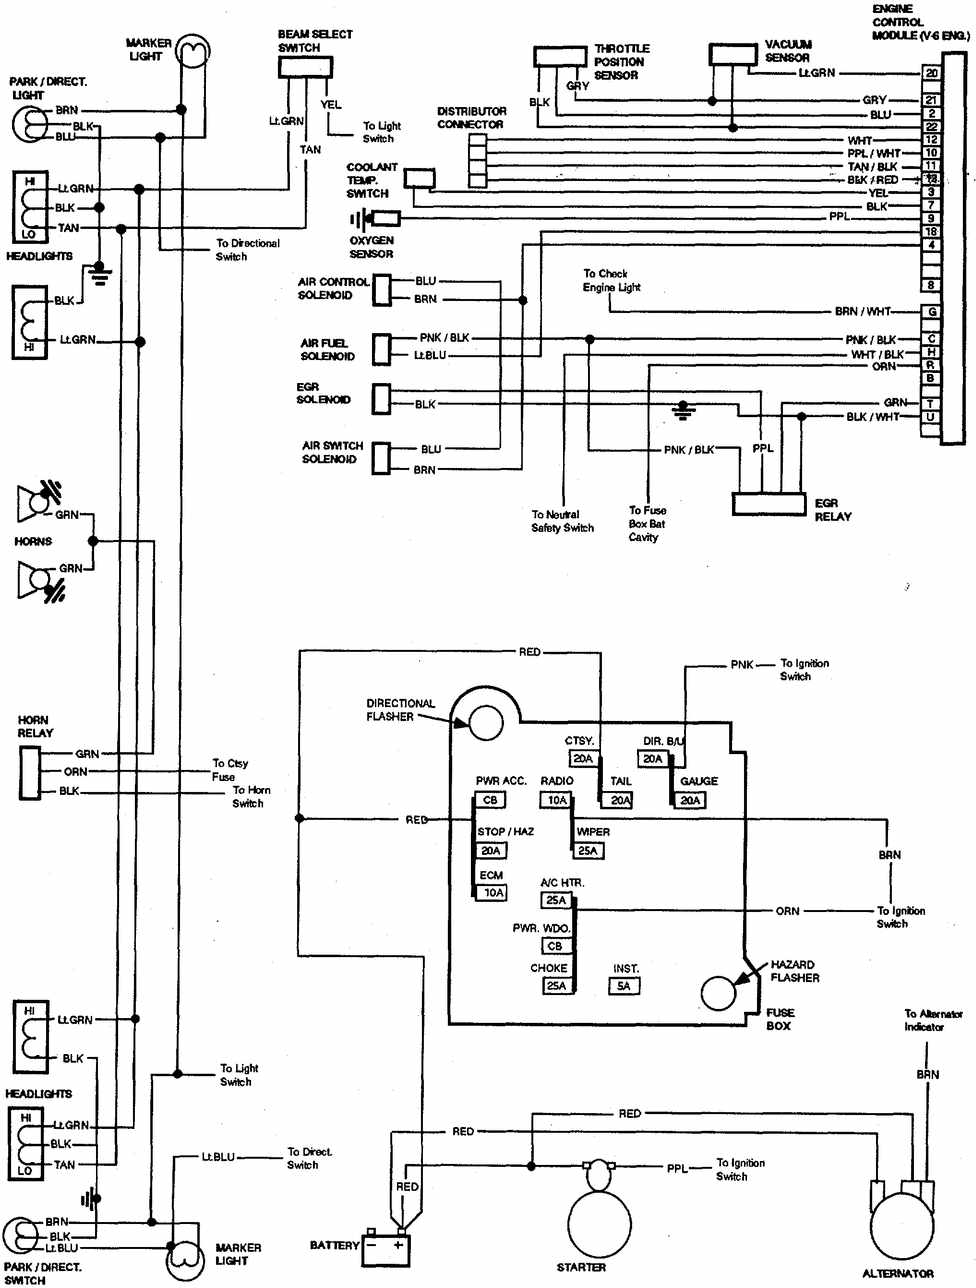 hight resolution of 1977 chevy wiring diagram free picture schematic simple wiring schema 305 chevy wiring diagrams free 75